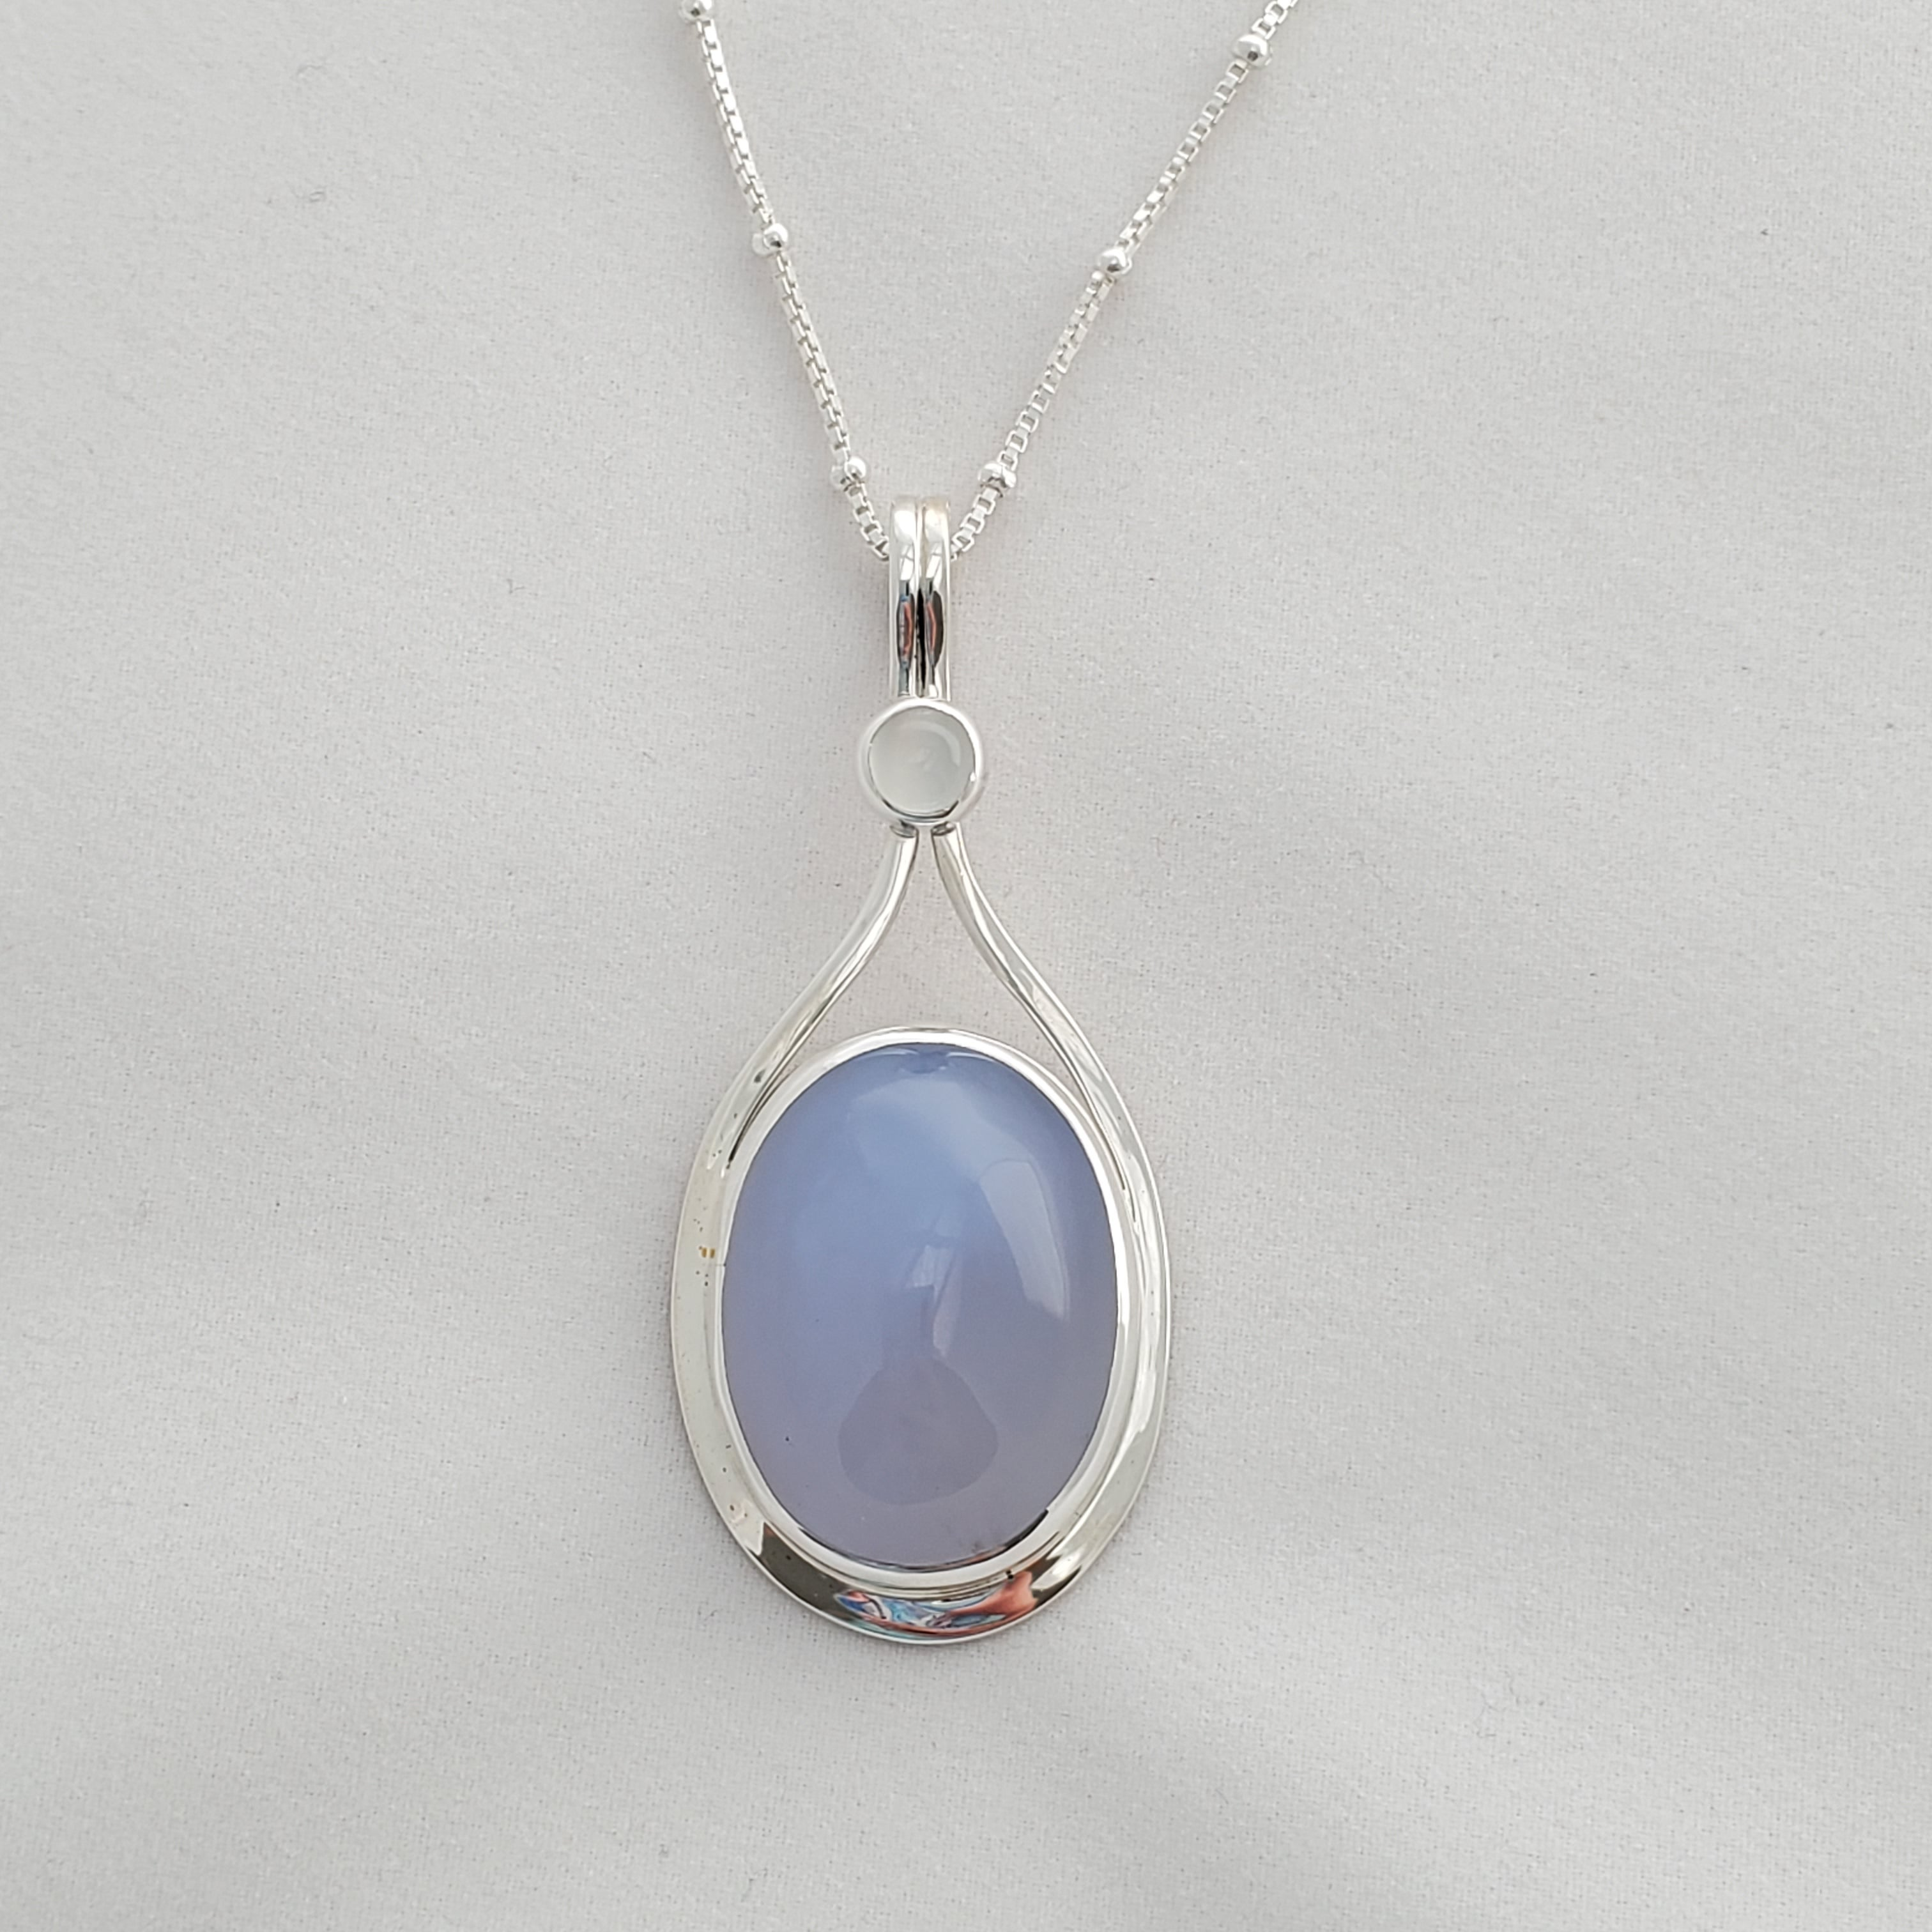 Teardrop silver border with oval lavender Chalcedony gemstone inside, accented with a small round moonstone at the top.